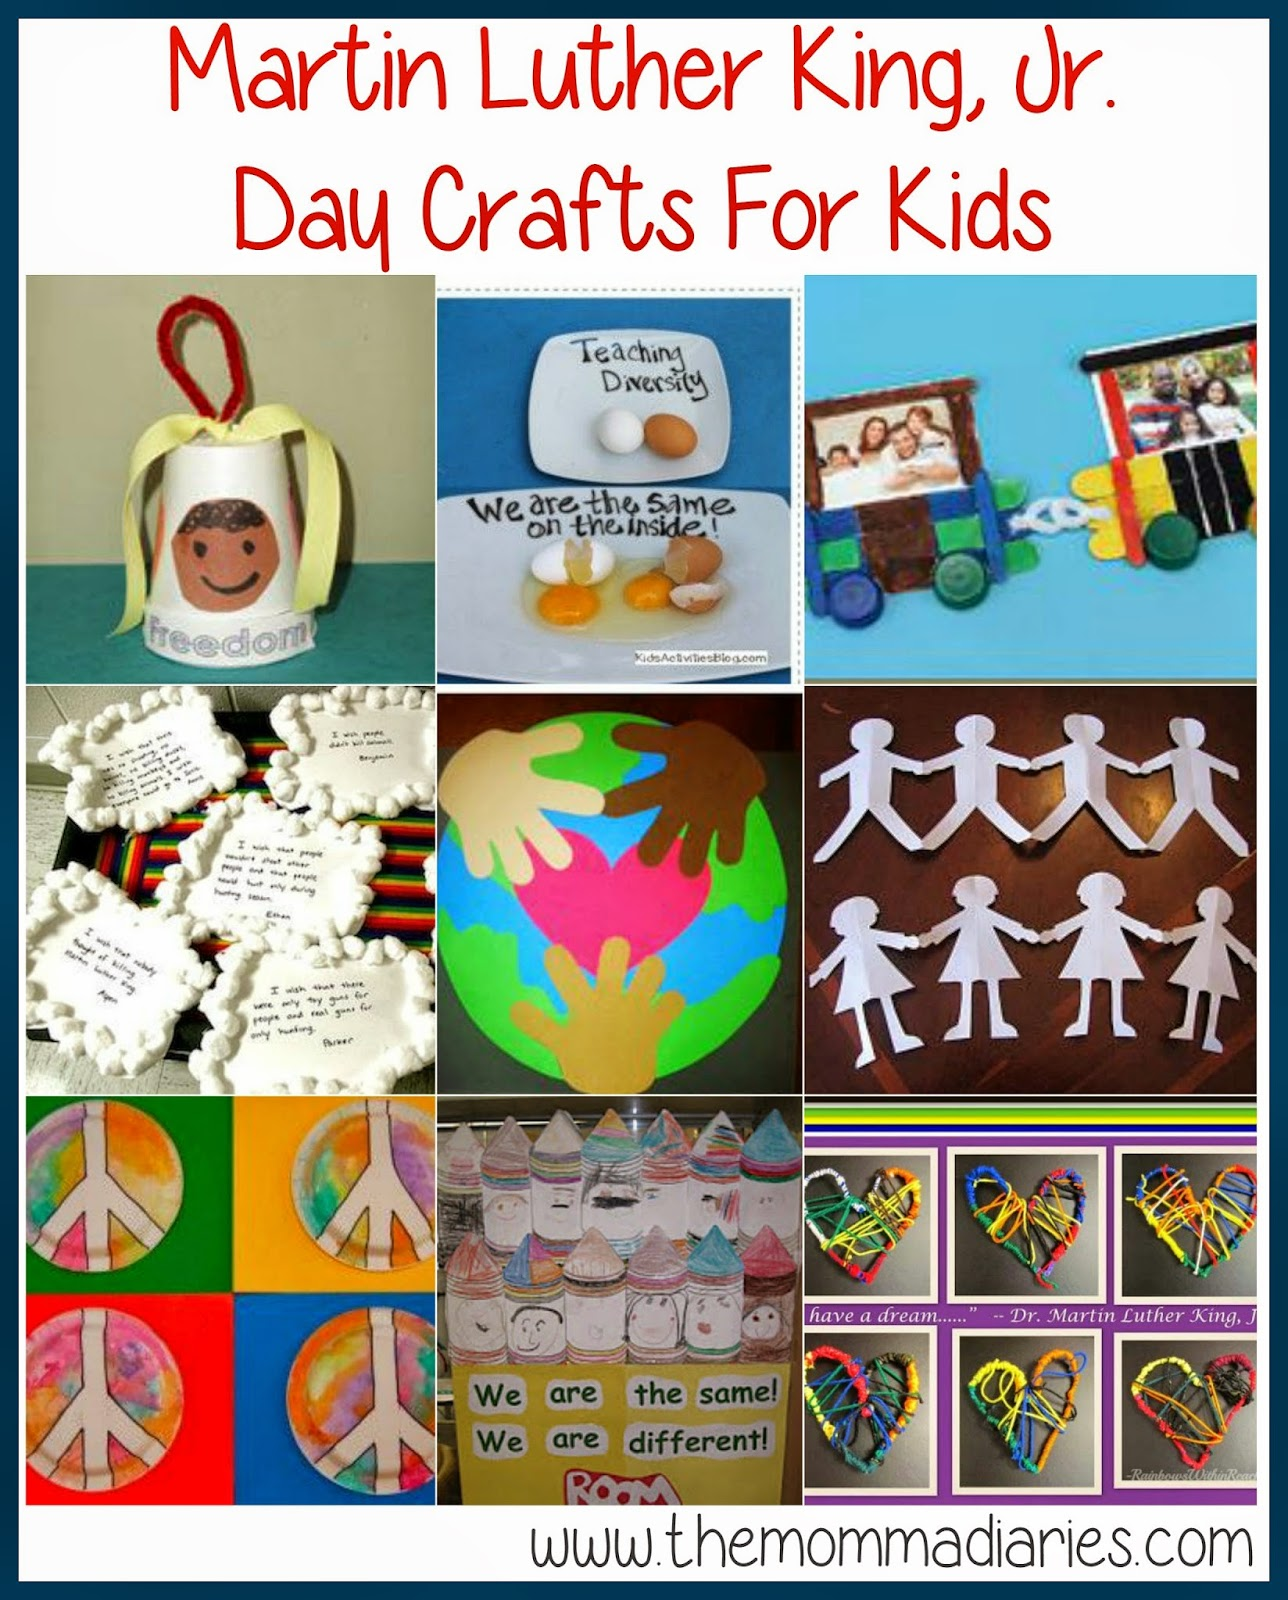 Martin Luther King Jr Day Crafts for Kids, Martin Luther King Day Crafts